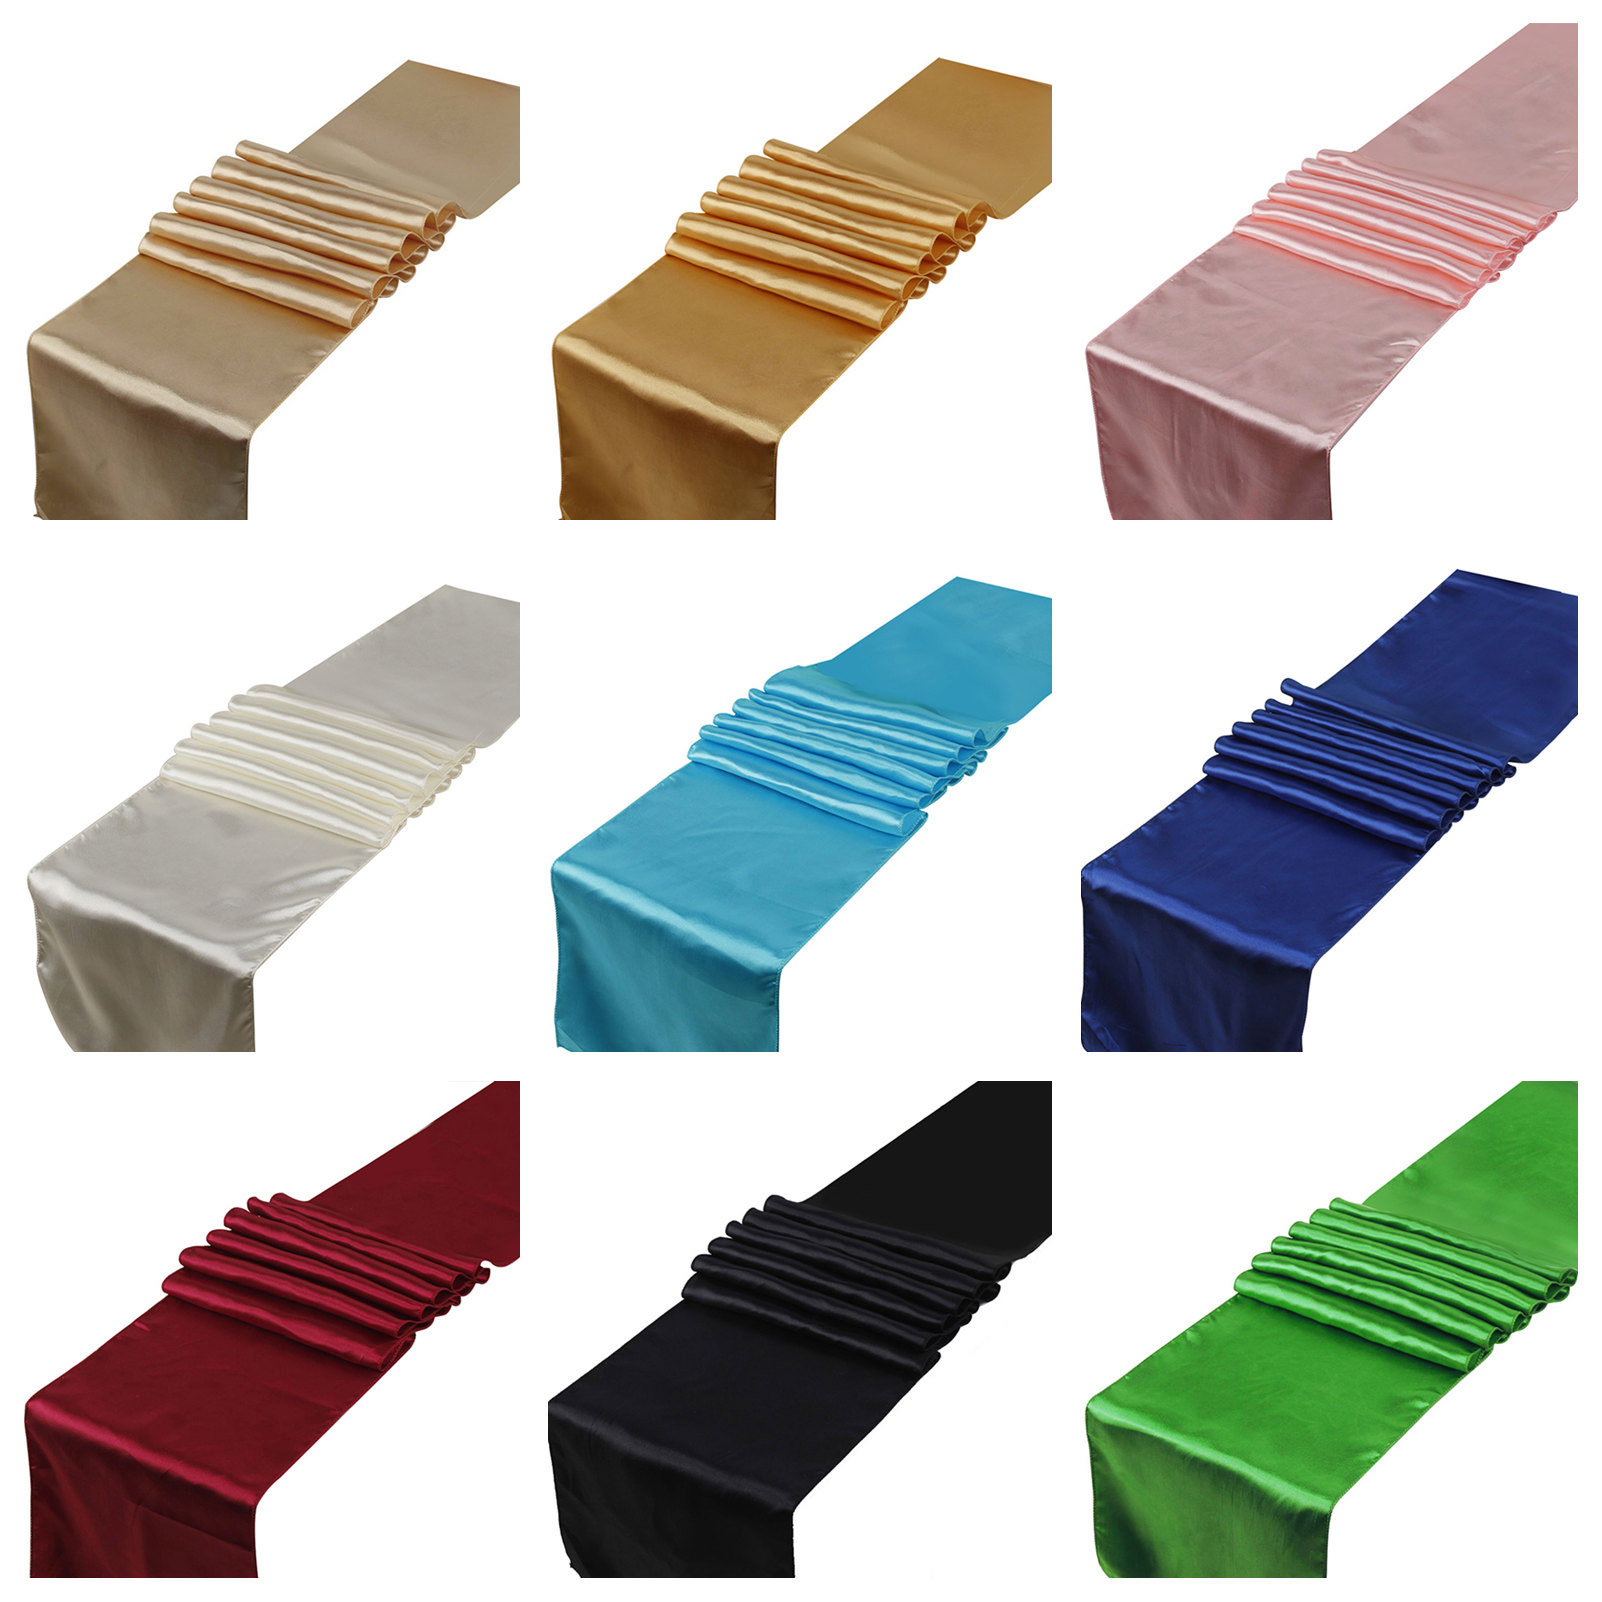 25PCS 30x275cm Satin Table Runners Table Decoration For Home Party Wedding Event Favors Christmas Decoration Banquet